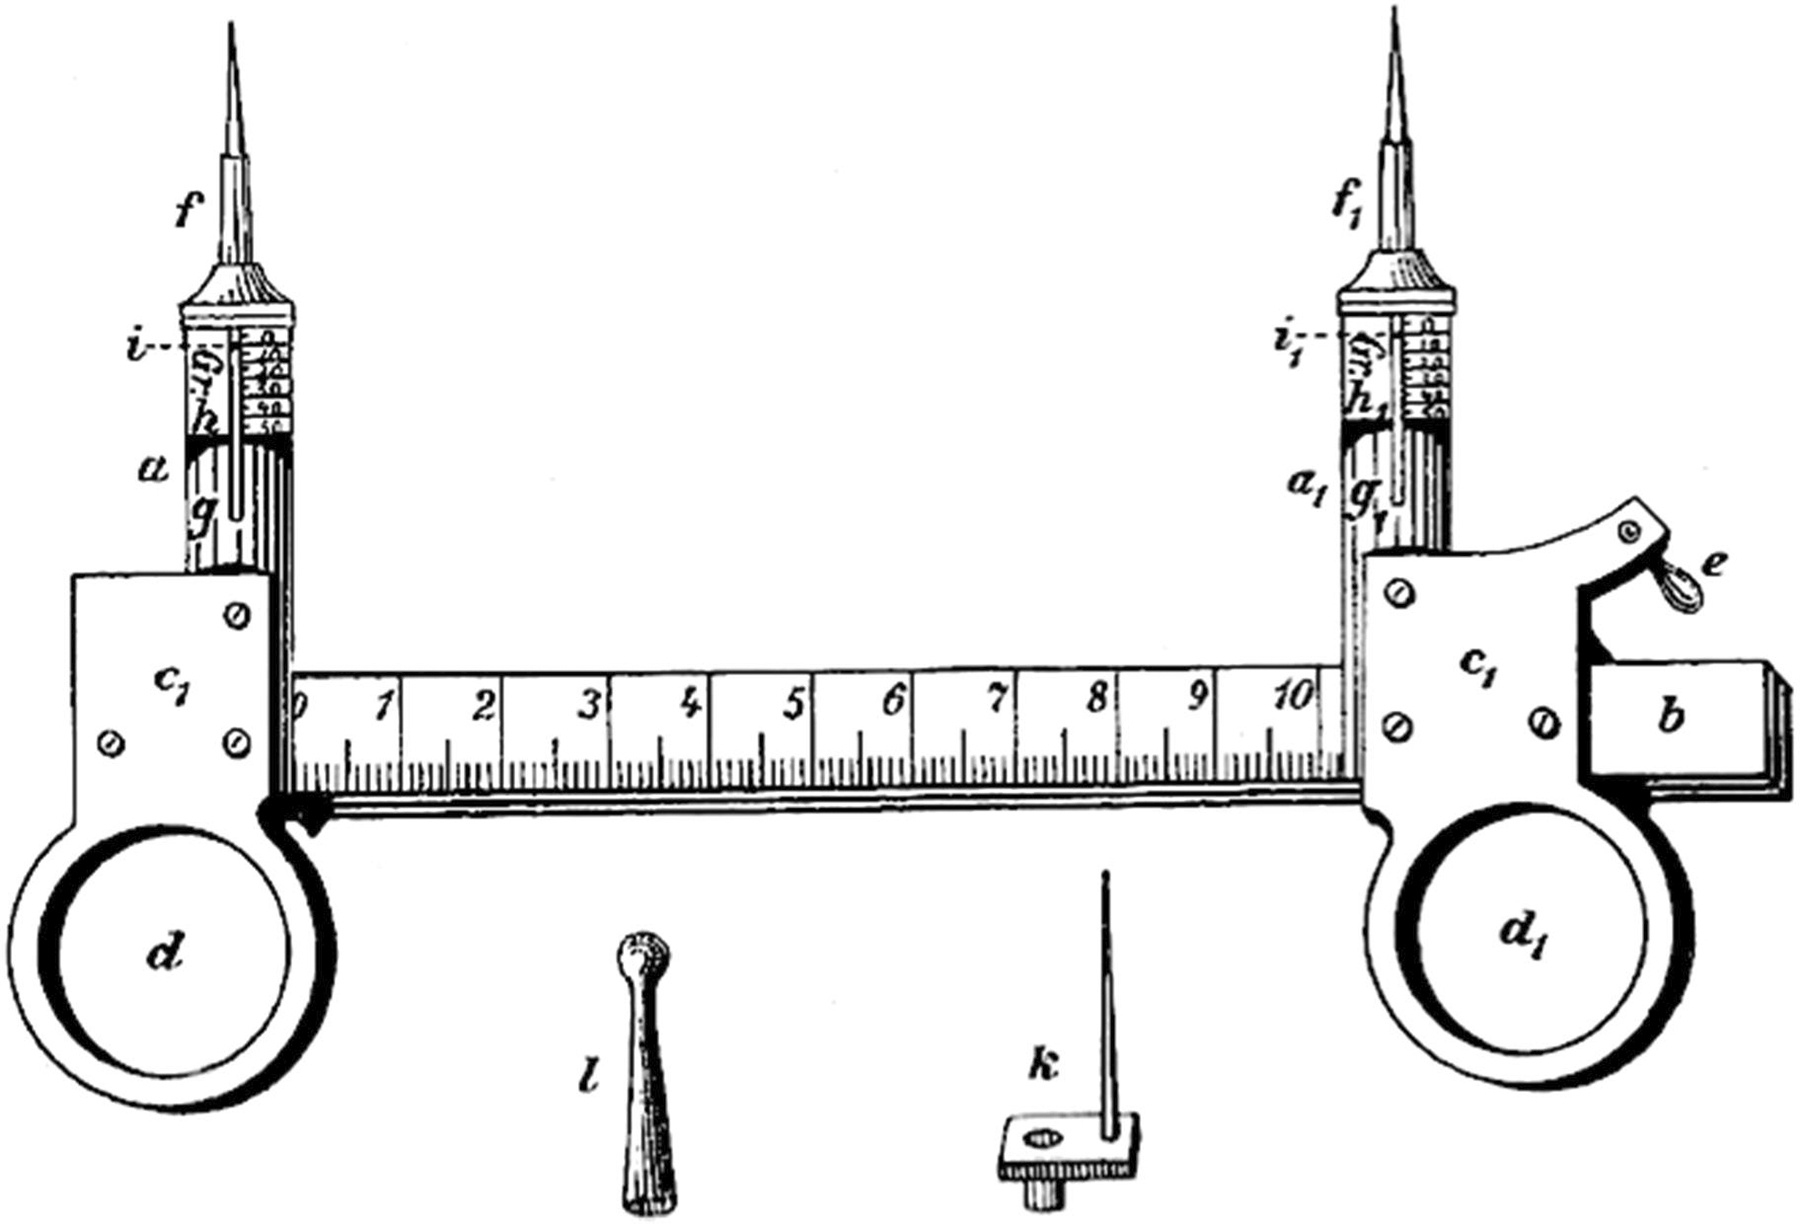 Weber's Compass And Aesthesiometers: History Of The dedans Relier Les Points De 1 À 30